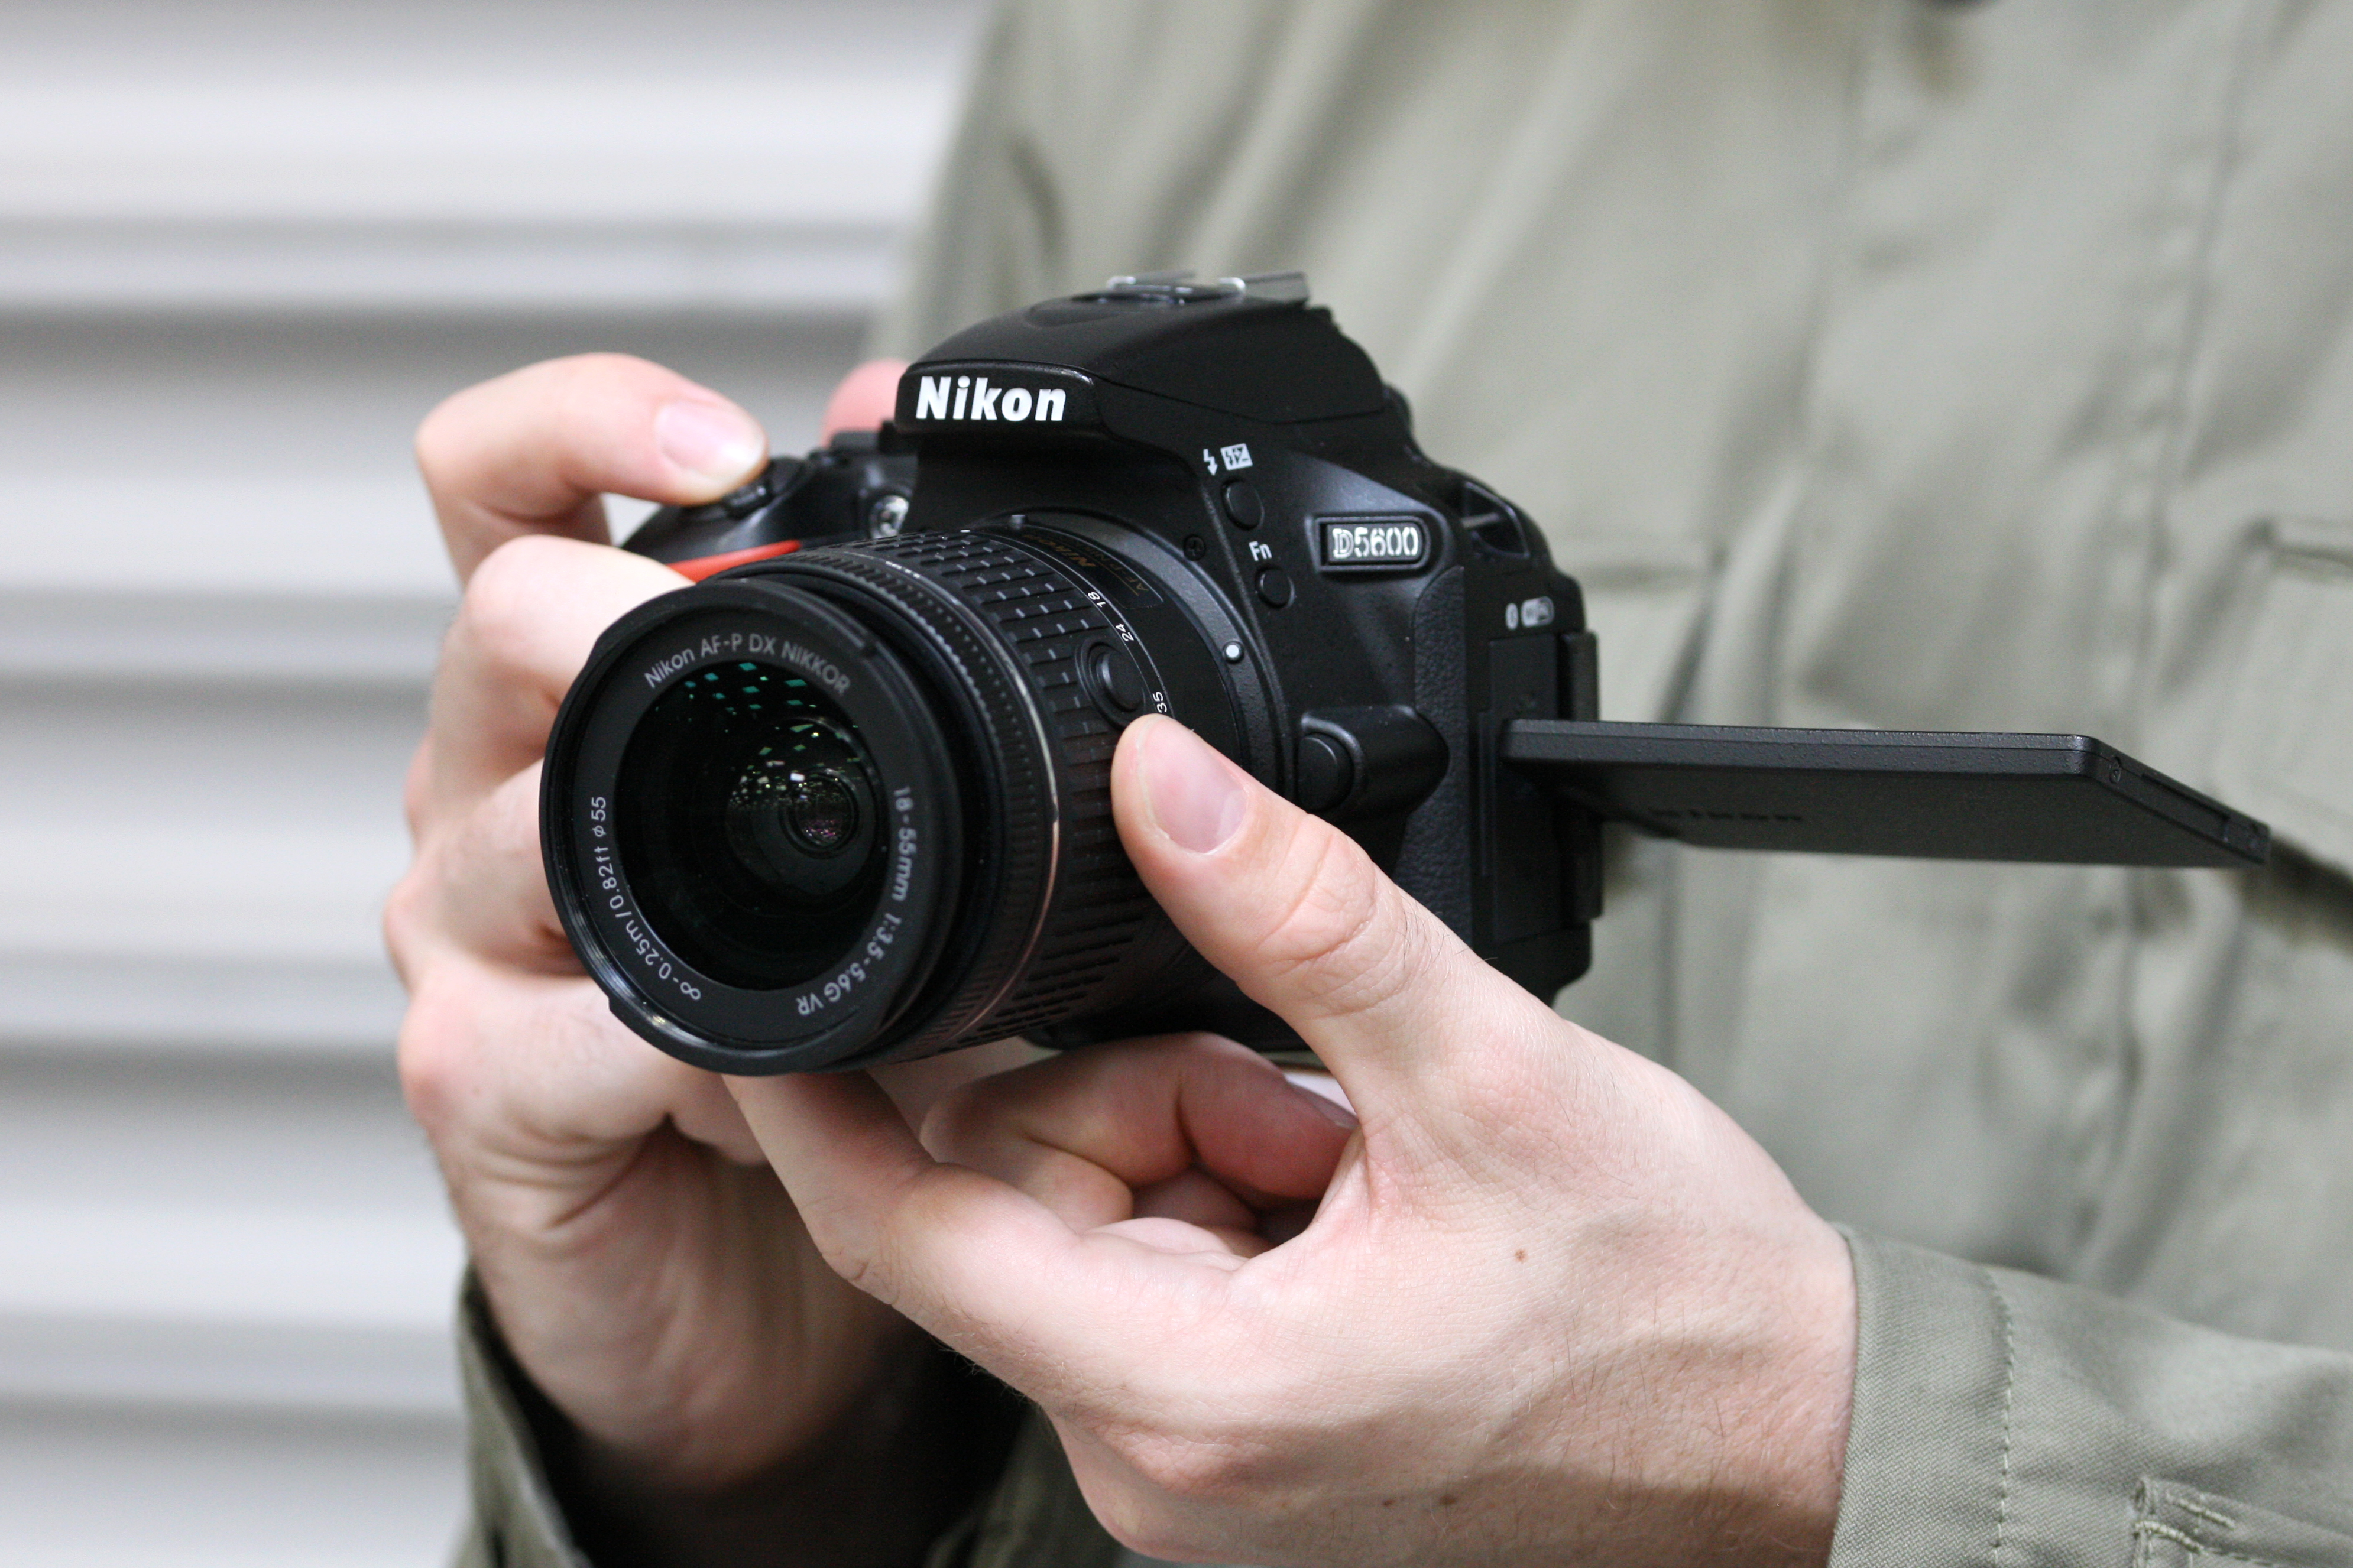 Nikon D5600 - an advanced DSLR camera for enthusiast photographers